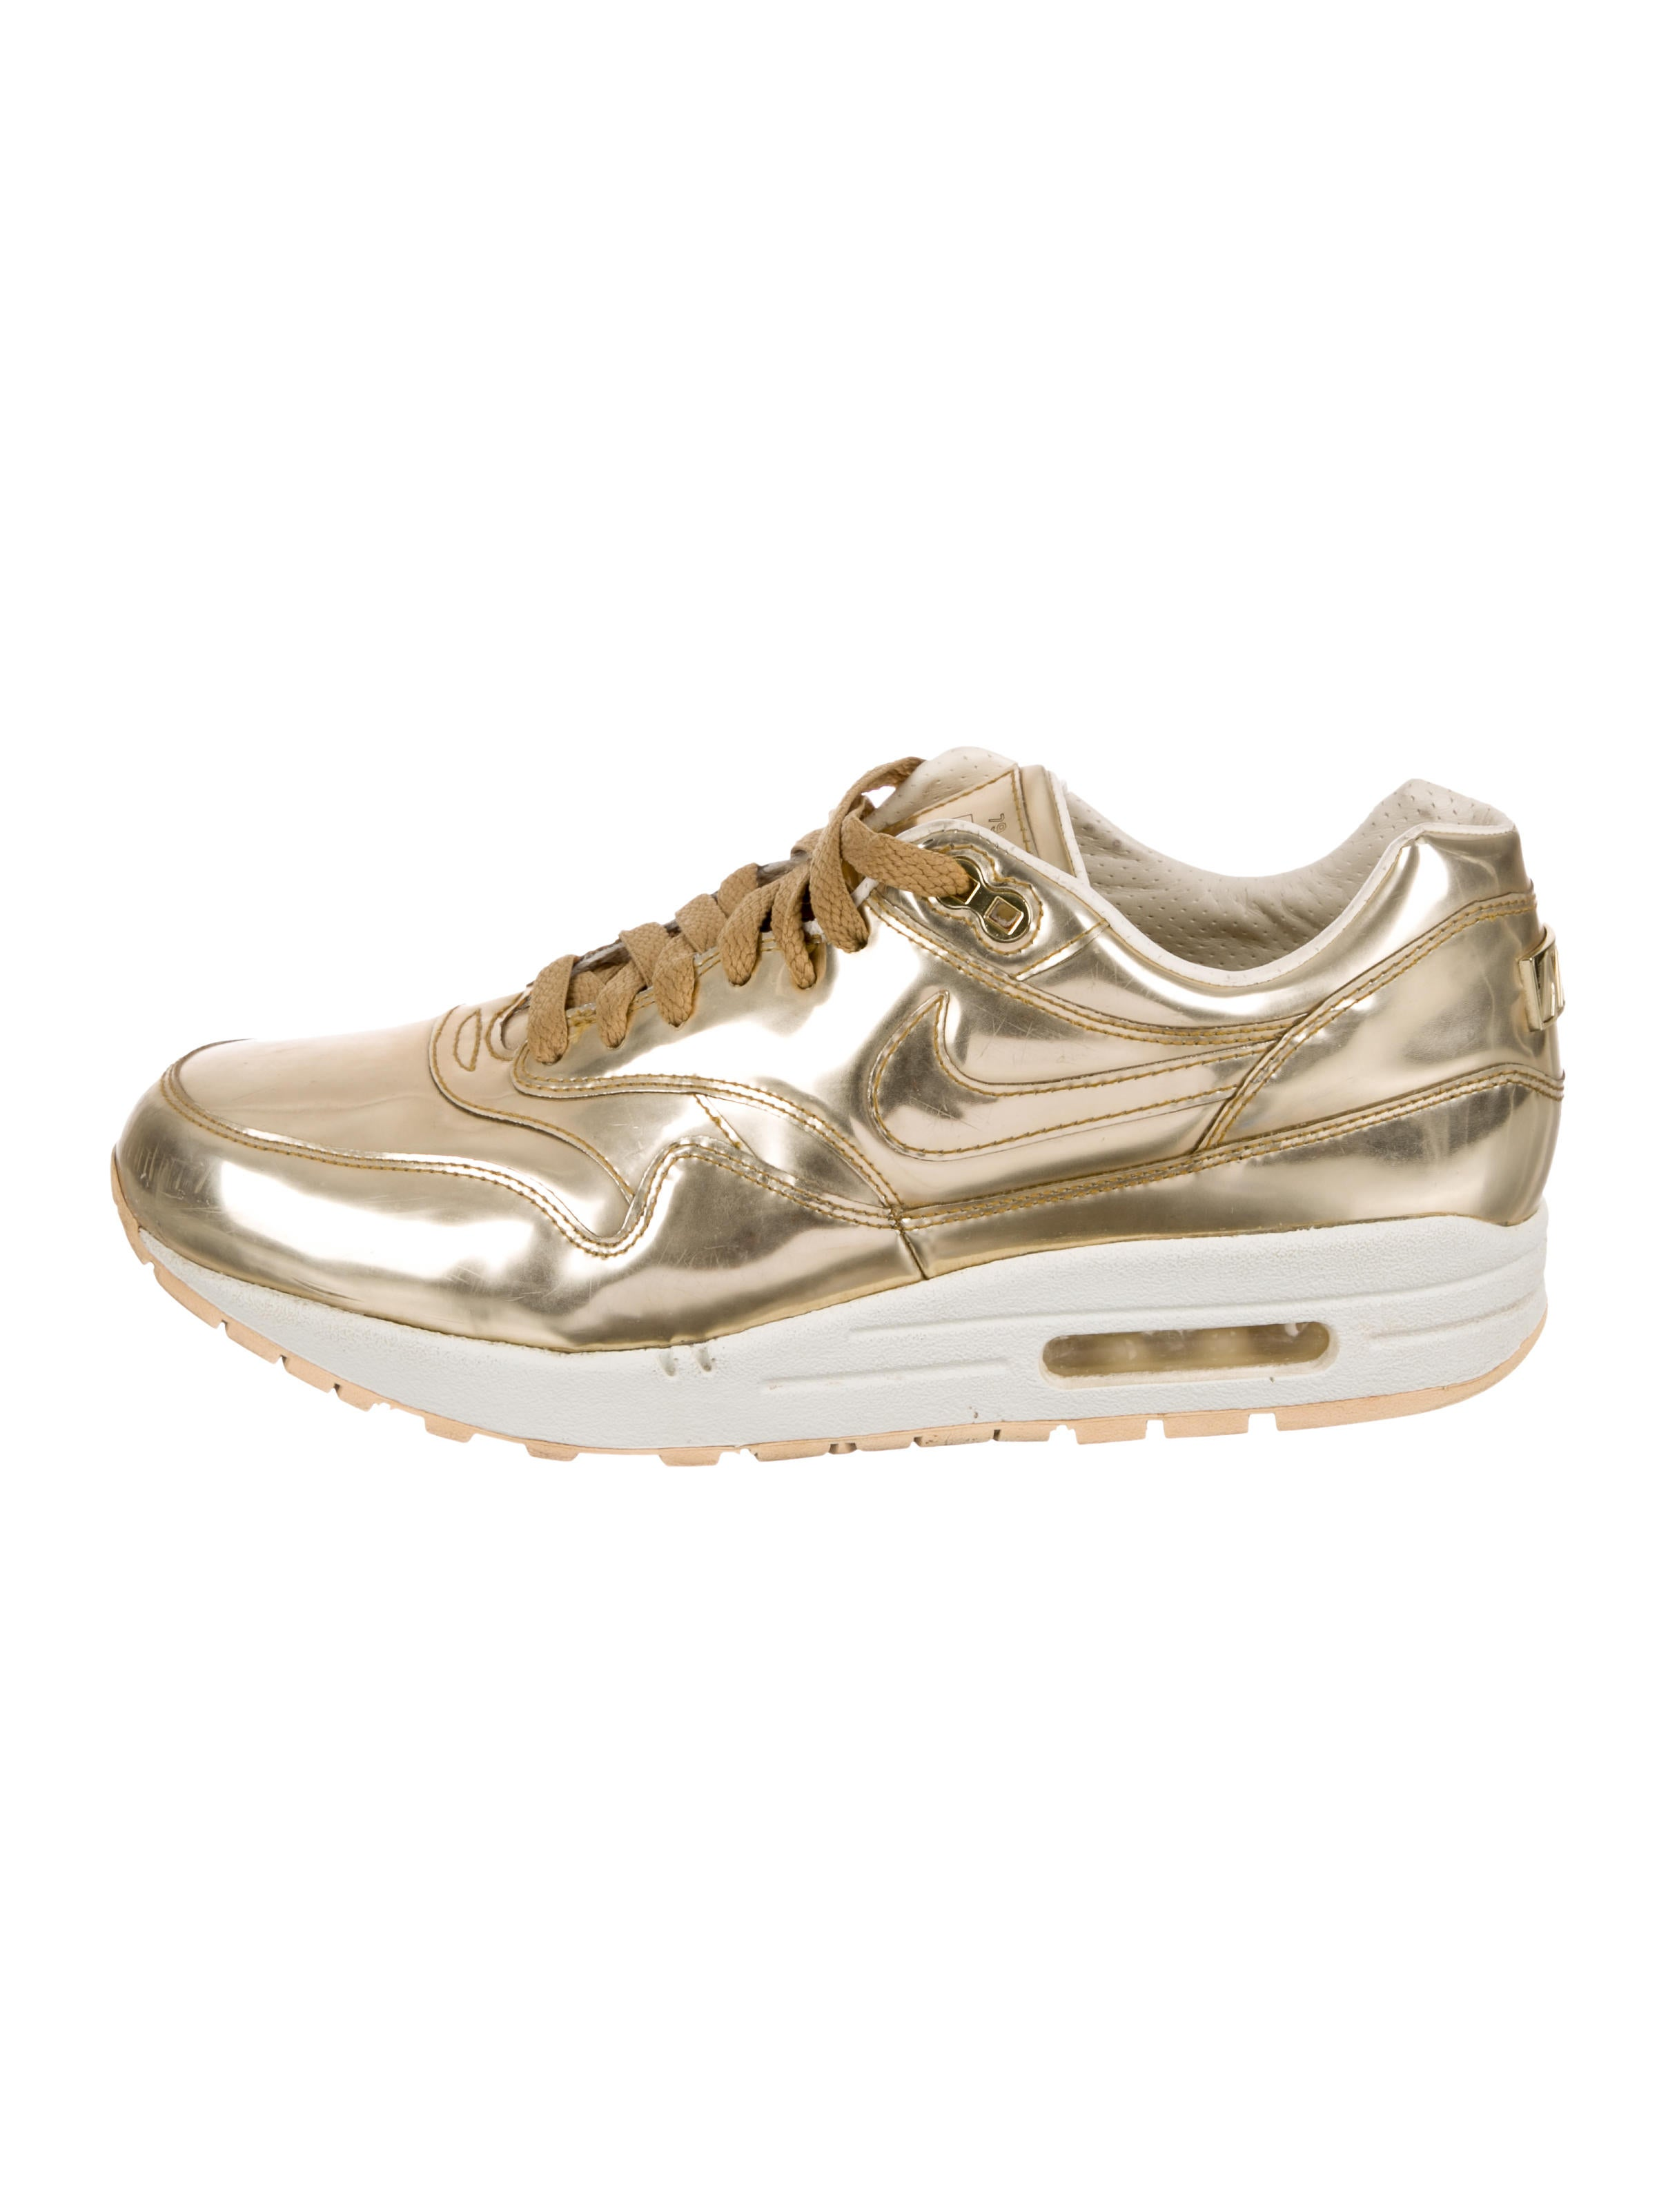 The RealReal Liquid Chaussures Air Max 1 WU223200 Gold Nike Sneakers Hw8OFqB